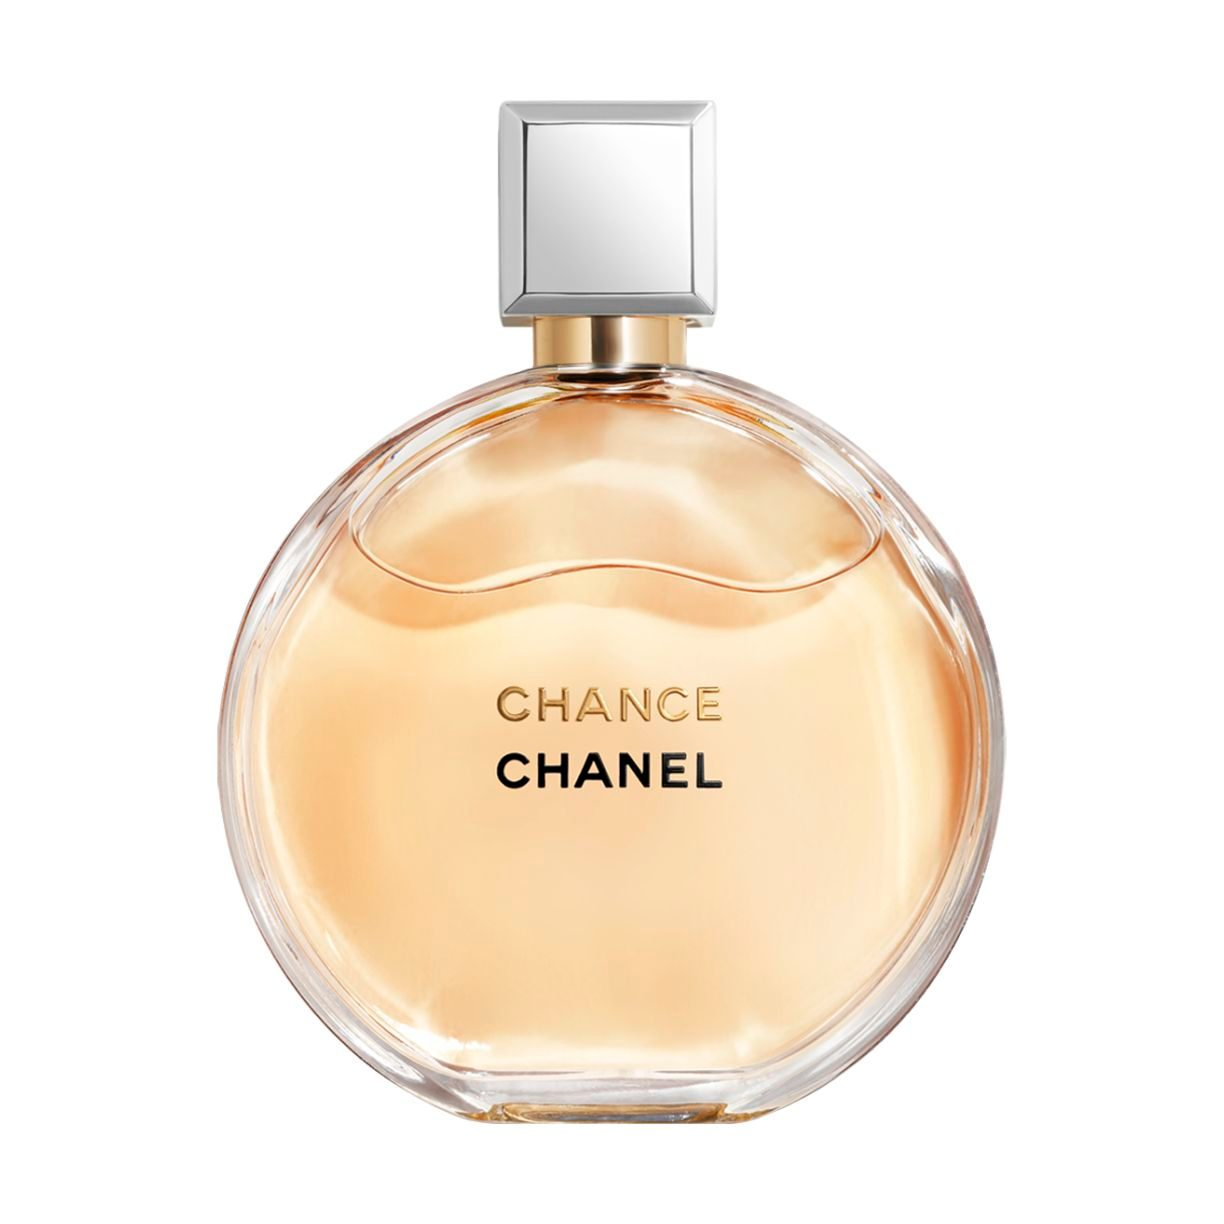 CHANCE EAU DE PARFUM SPRAY